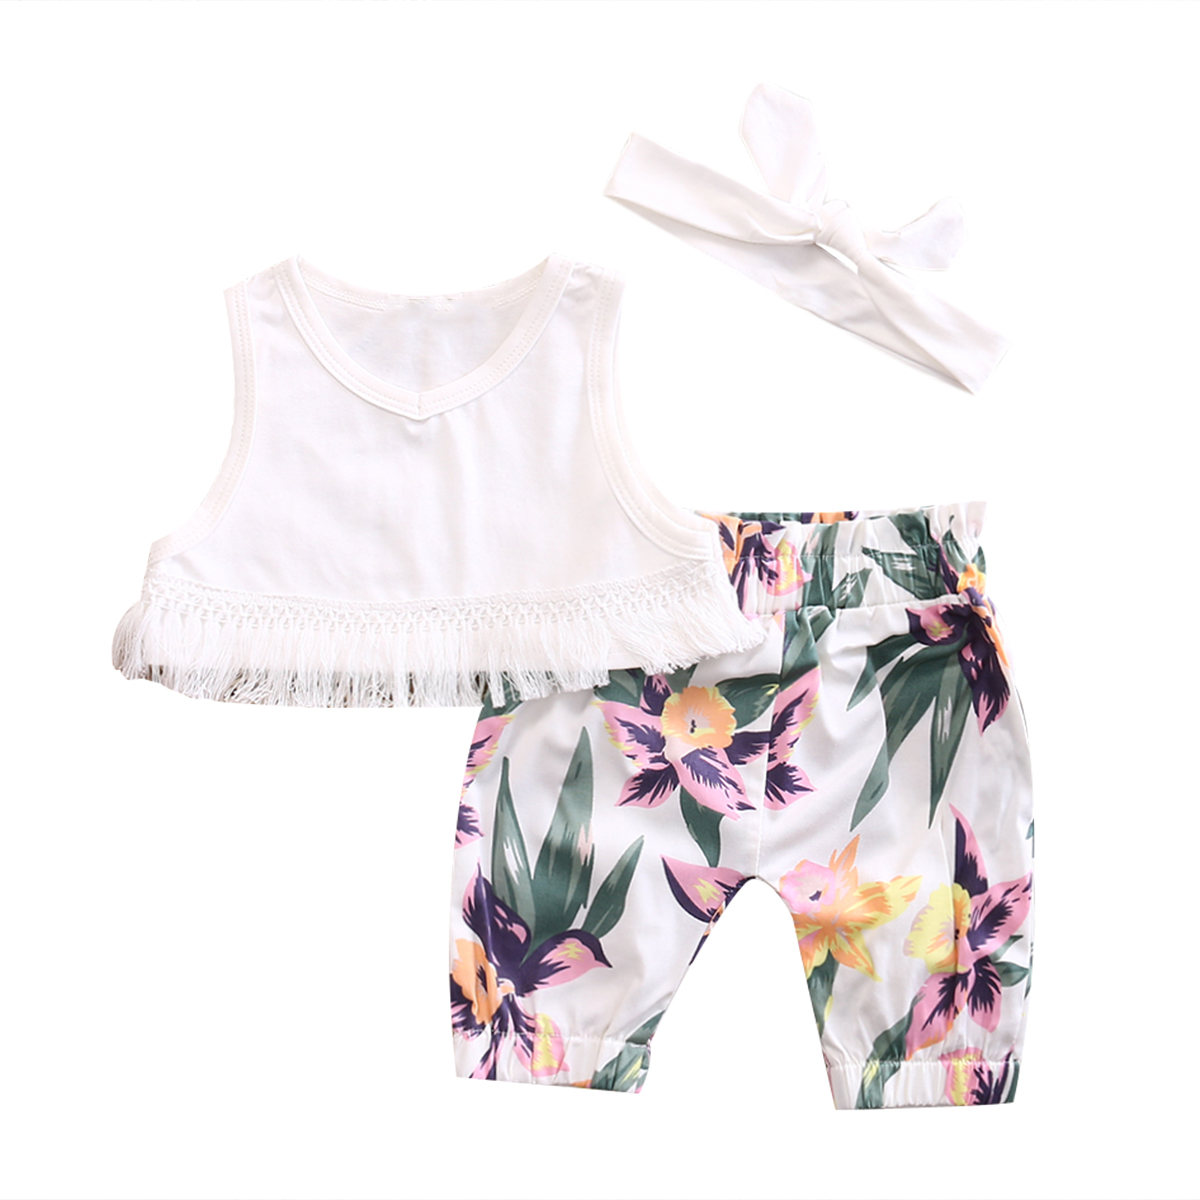 Cute Newborn Infant Baby Girl Clothes Sleeveless Tassel Vest Crop Tops Floral Shorts Headband Outfit 3PCS Baby Summer Clothes